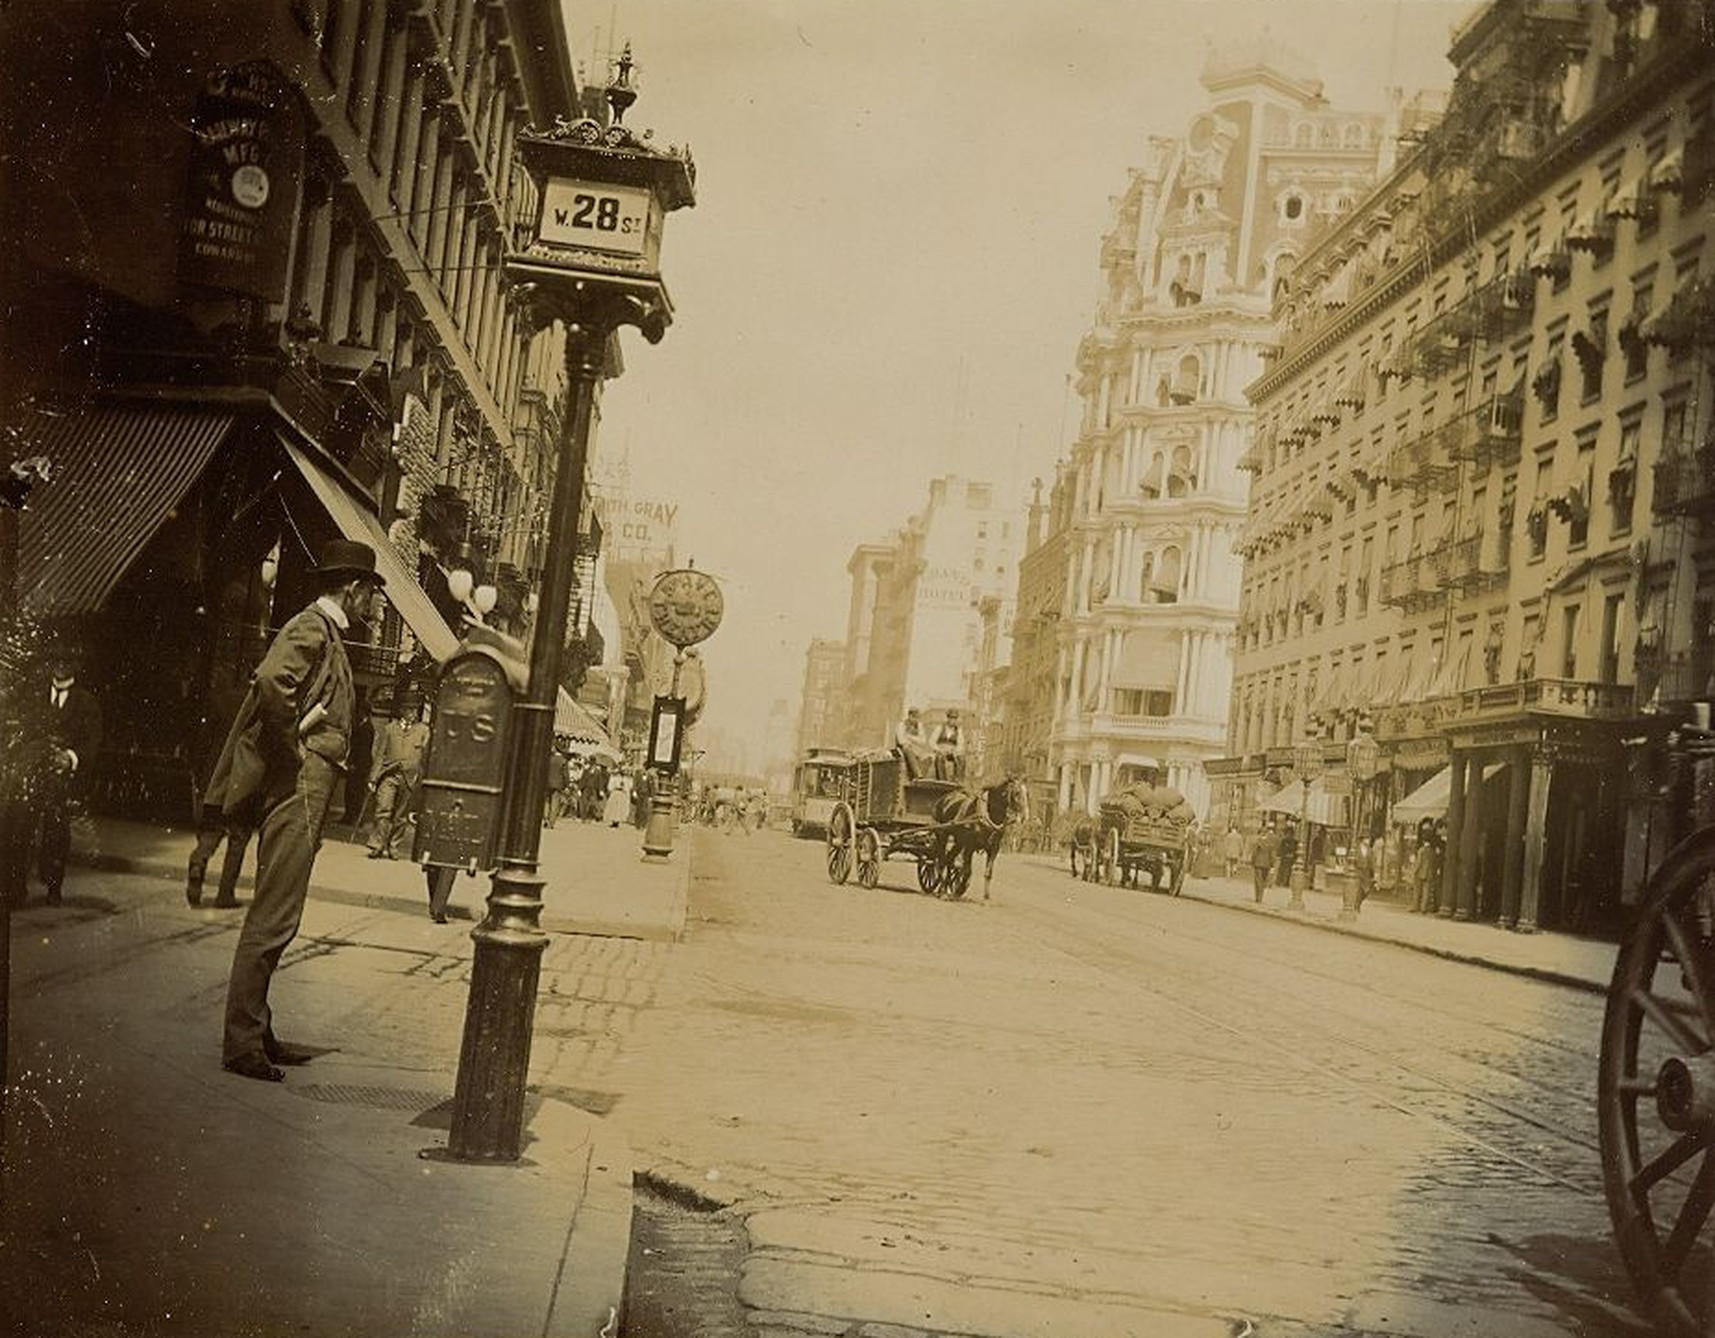 Old New York In Photos #90 - Broadway & 28th Street 1896